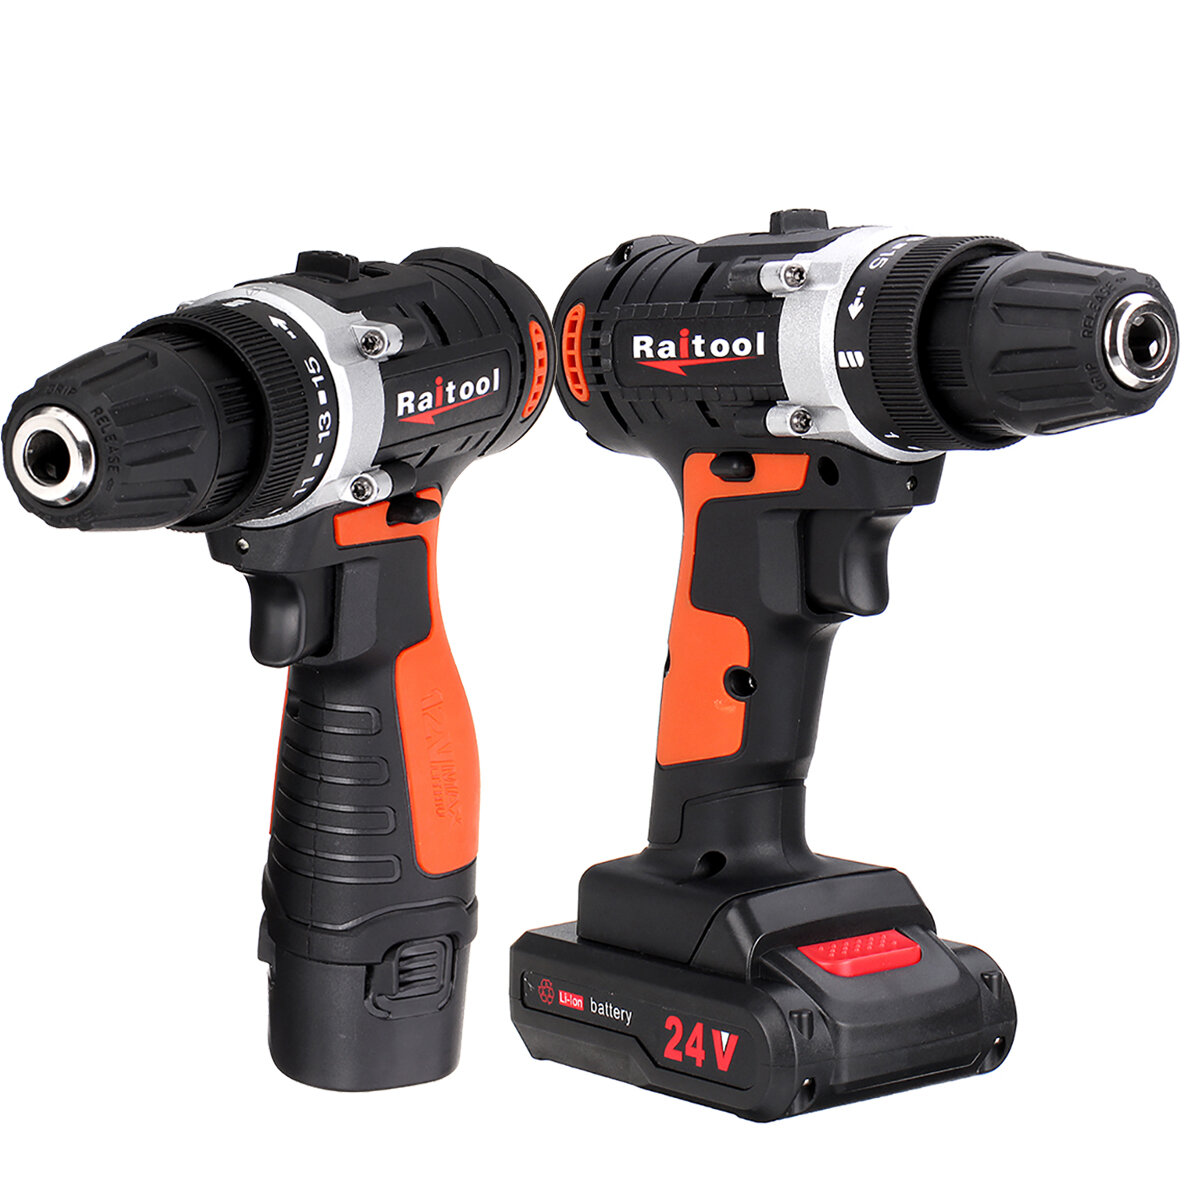 Raitool 12V/24V Lithium Battery Power Drill Cordless Rechargeable 2 Speed Electric Drill